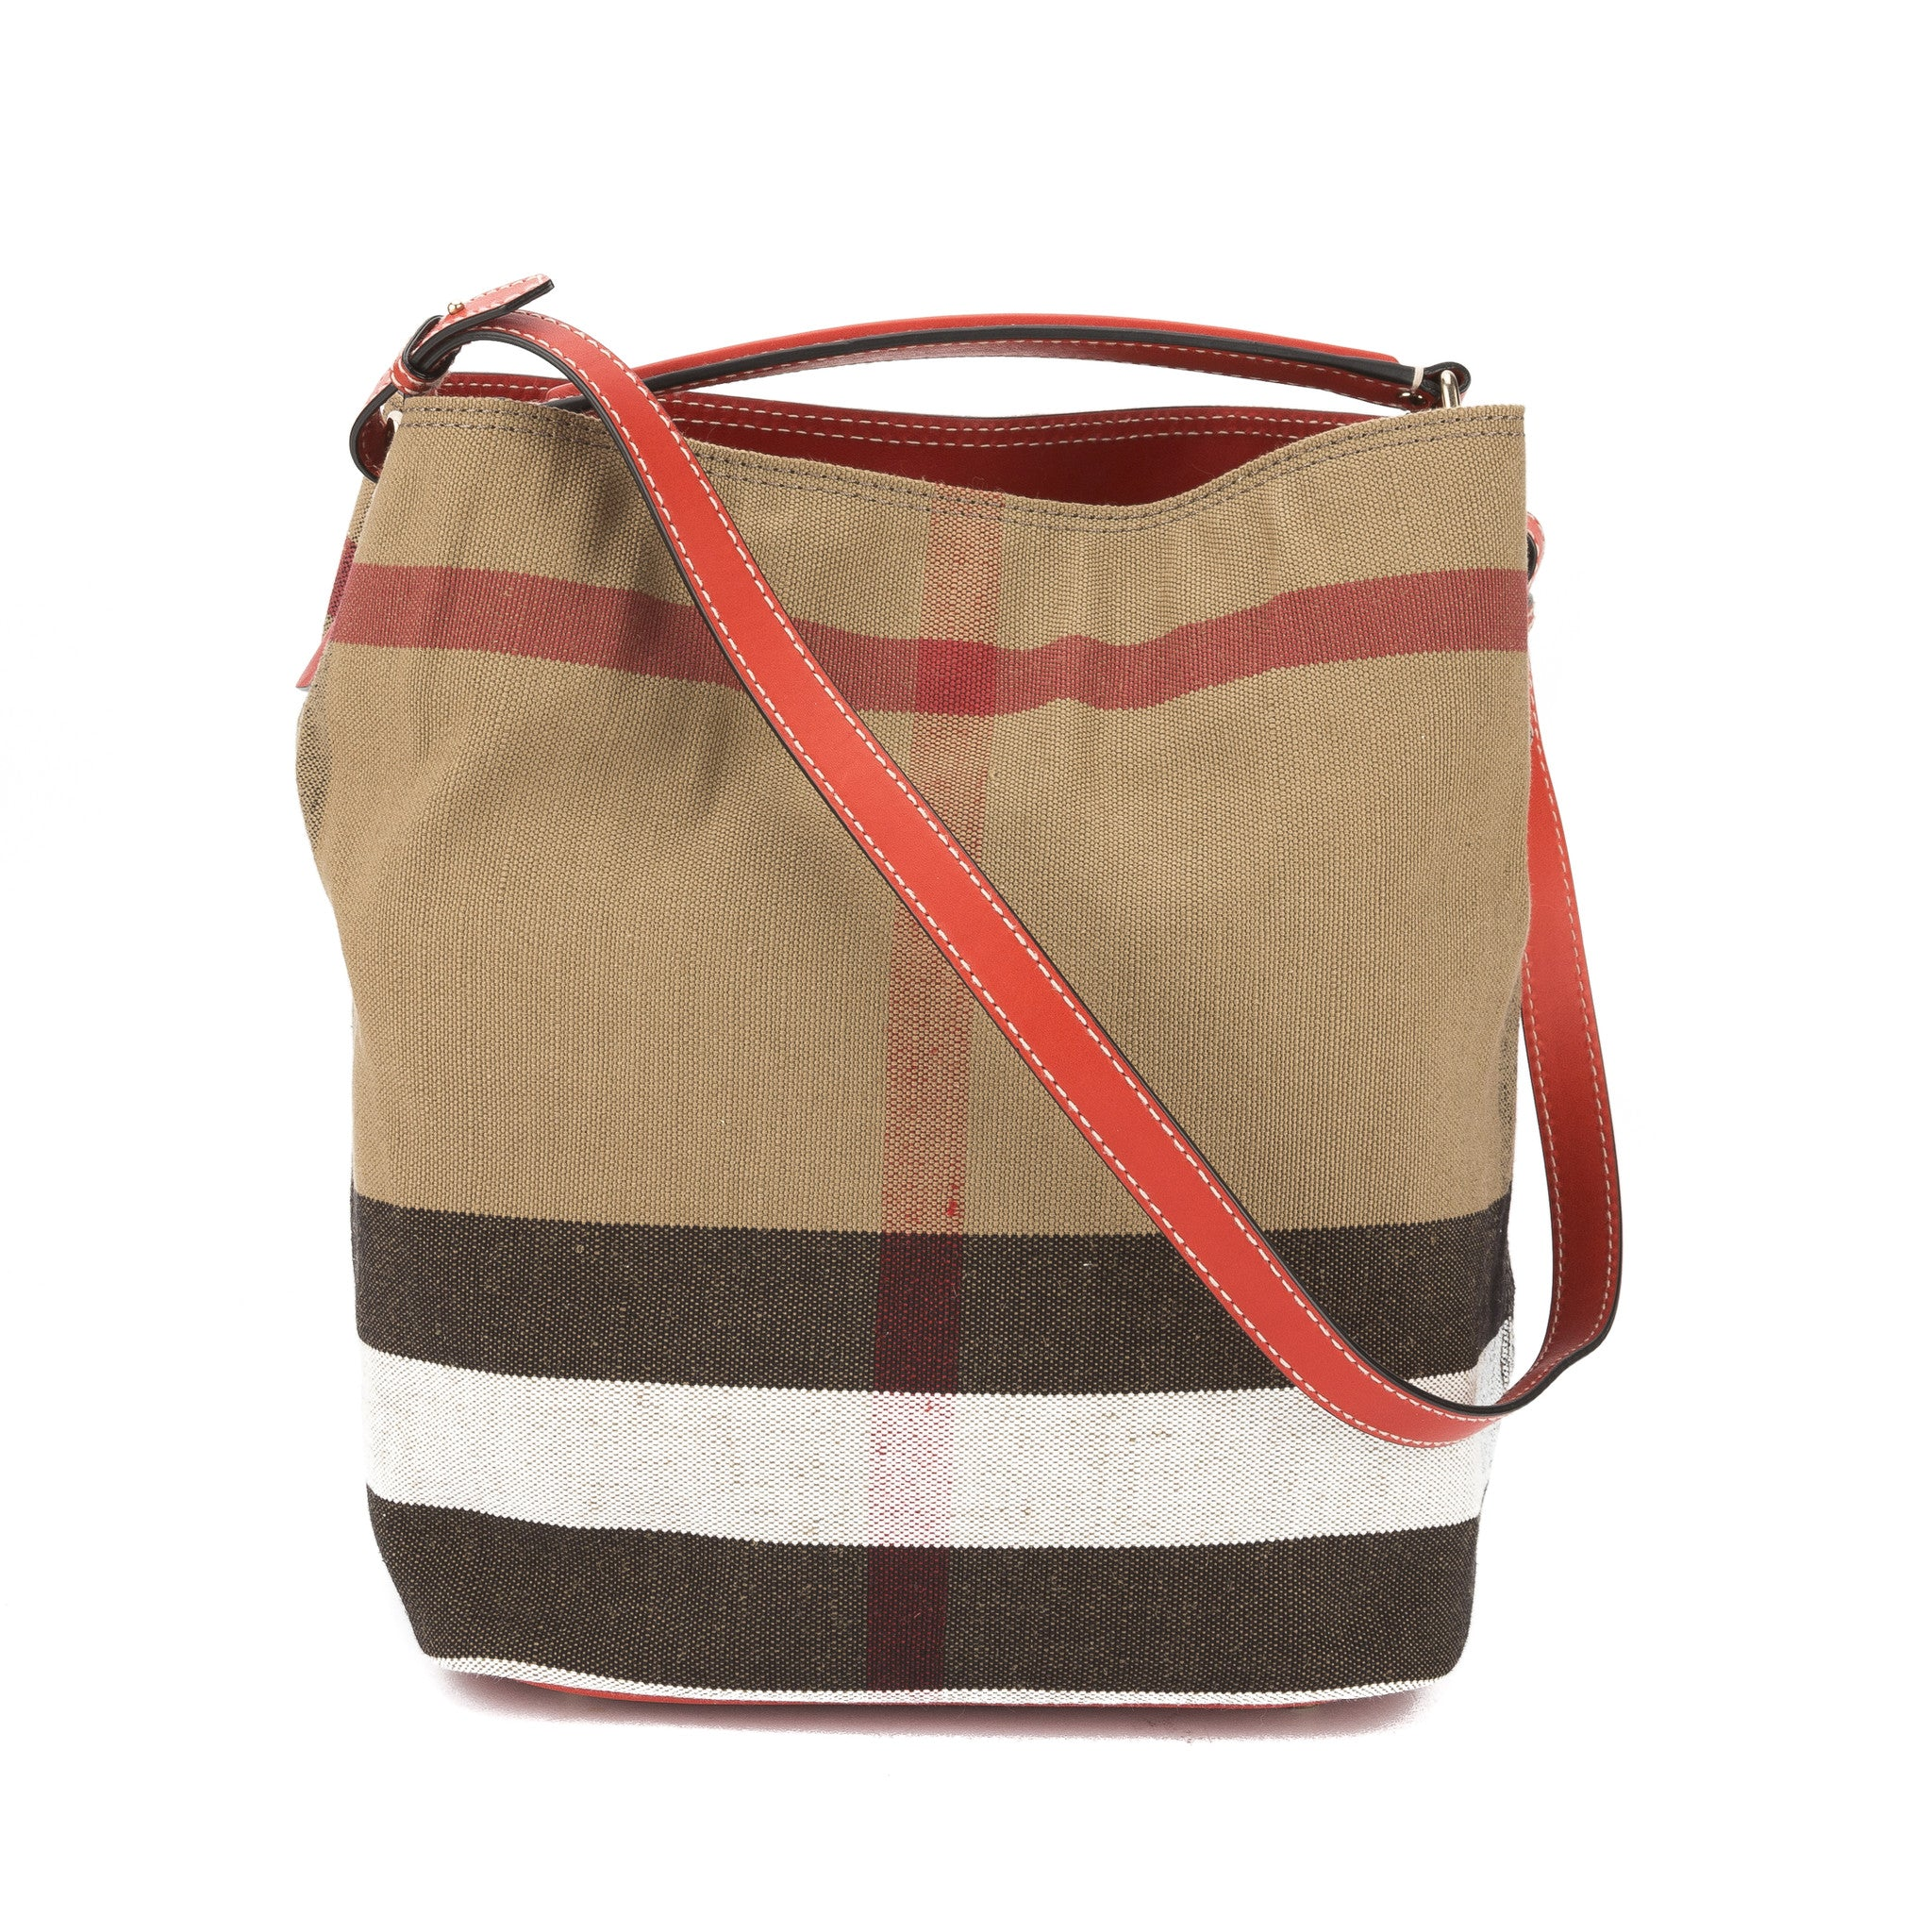 Burberry Cadmium Red Leather and Canvas Check Medium Ashby Bag New with Tags 28fe2113c9cc0